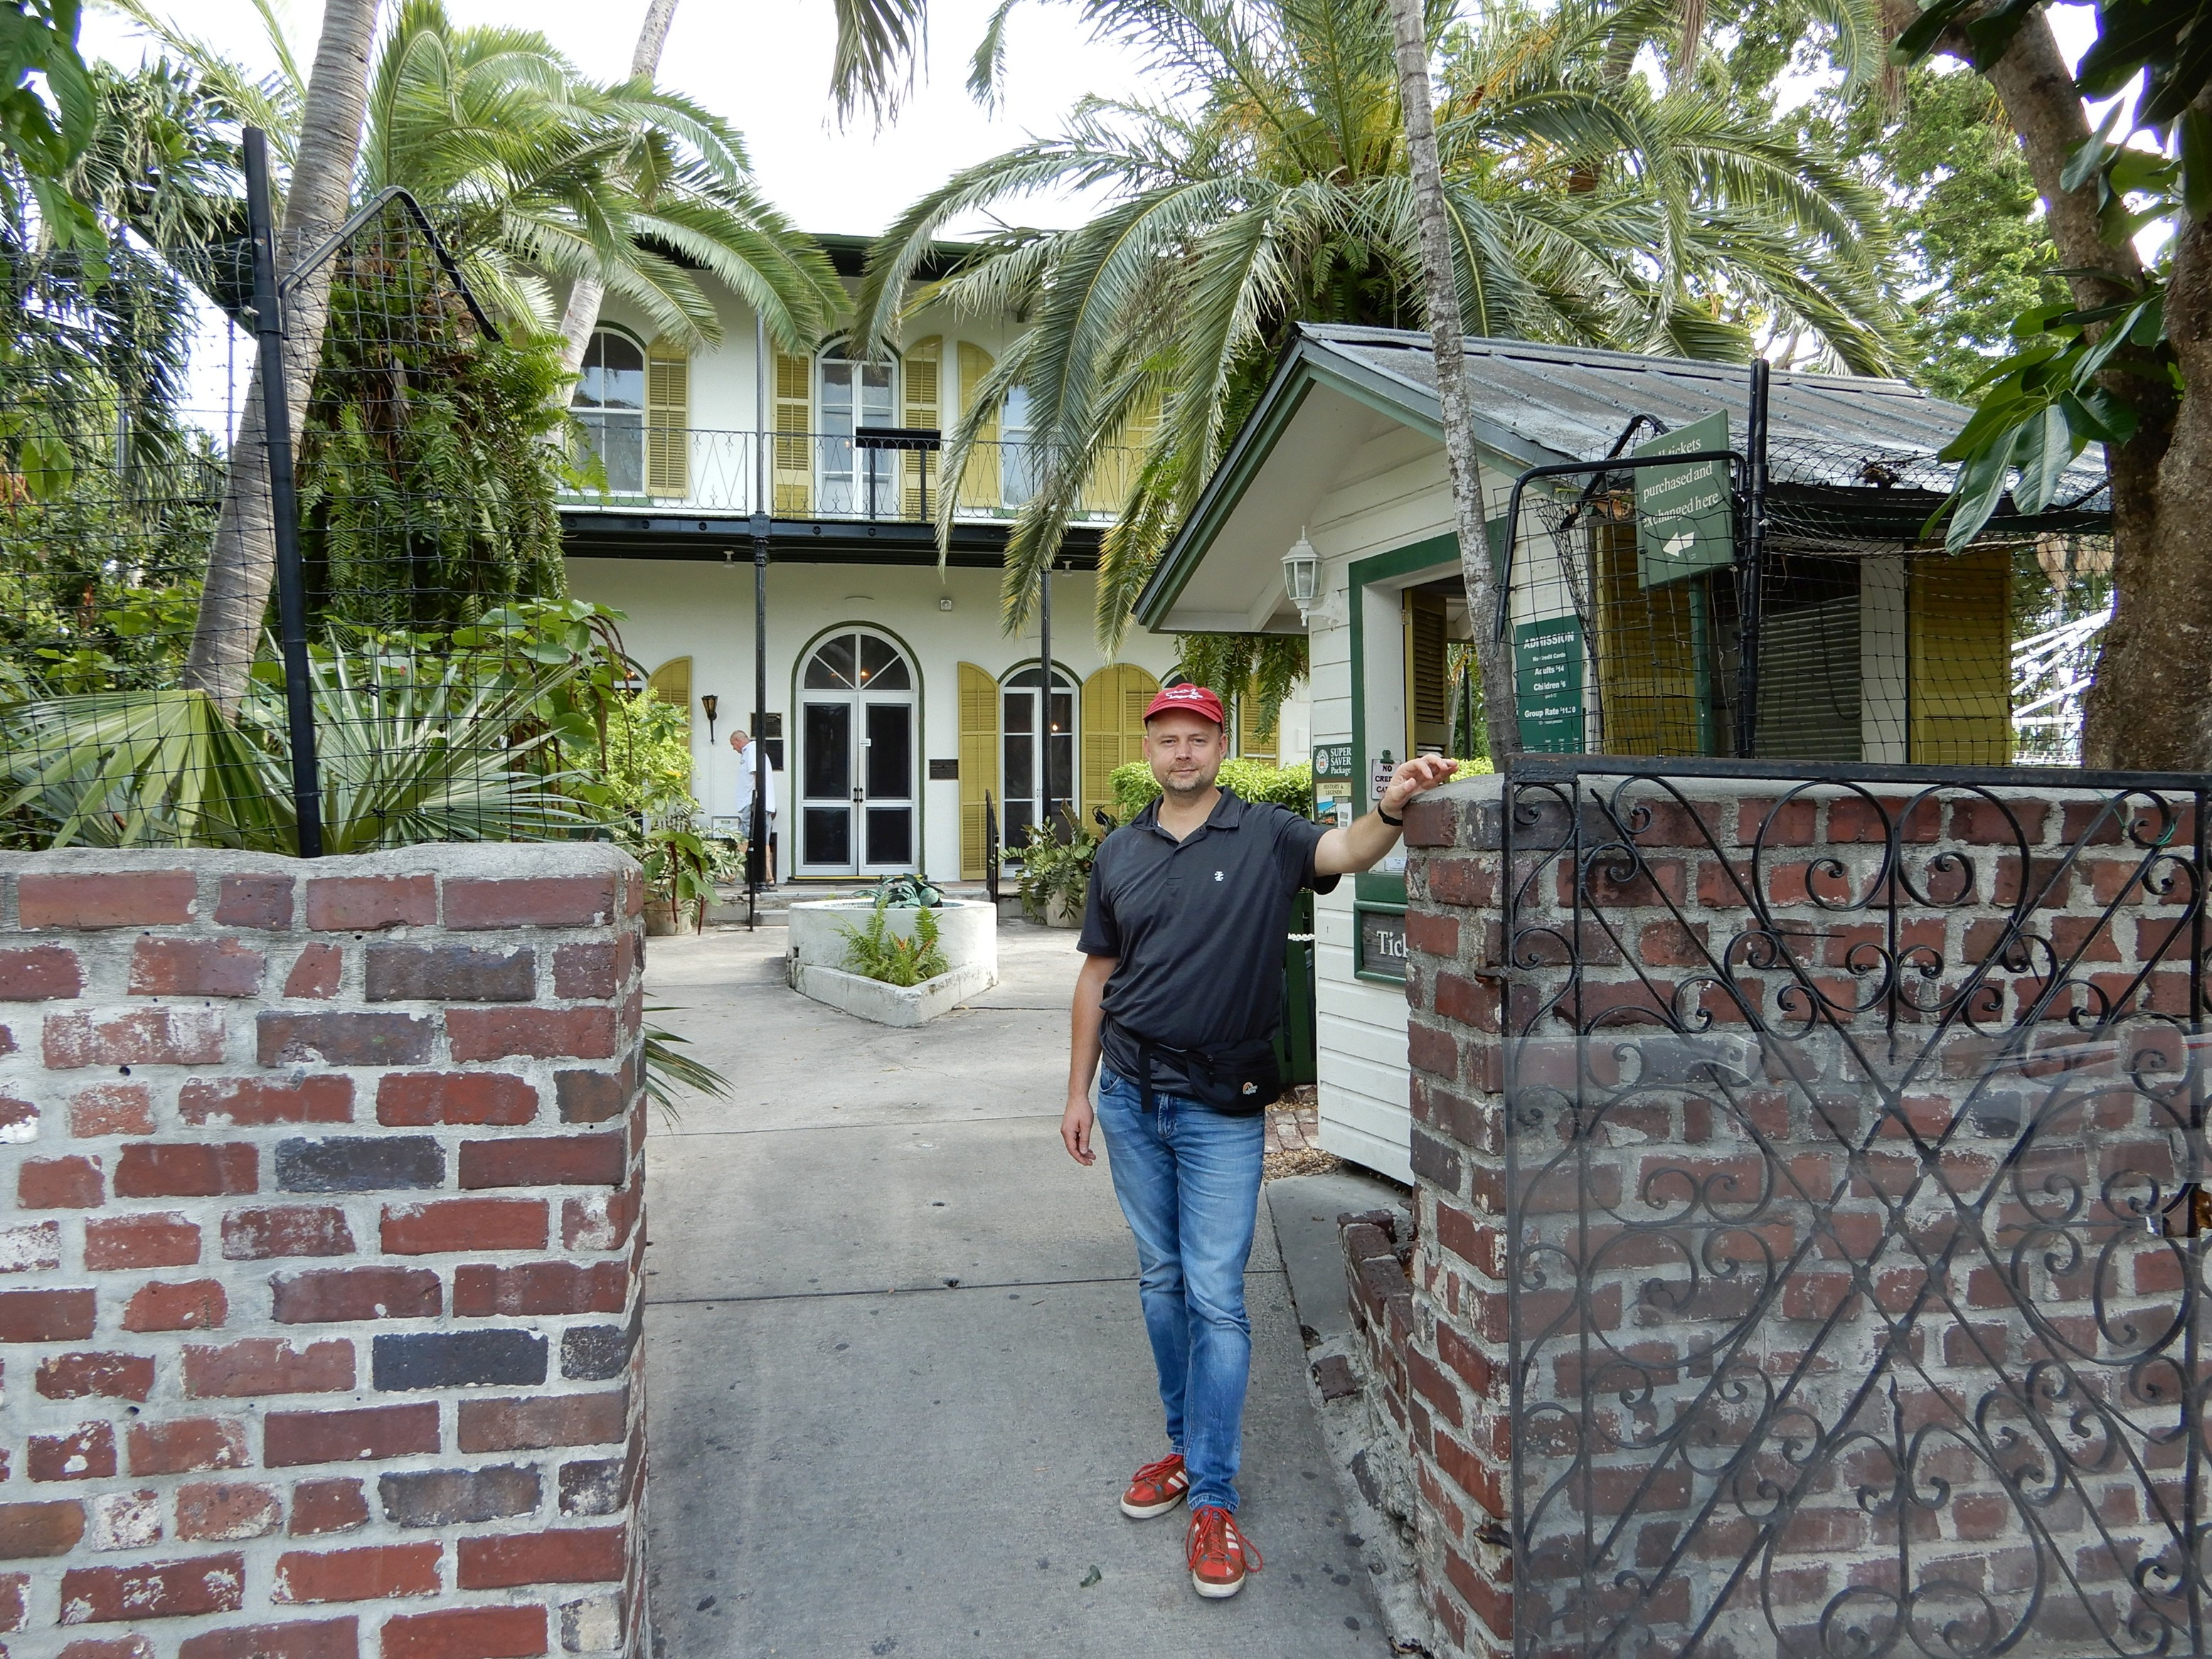 Ernest Hemingway Home and Museum, Key West, Florida.